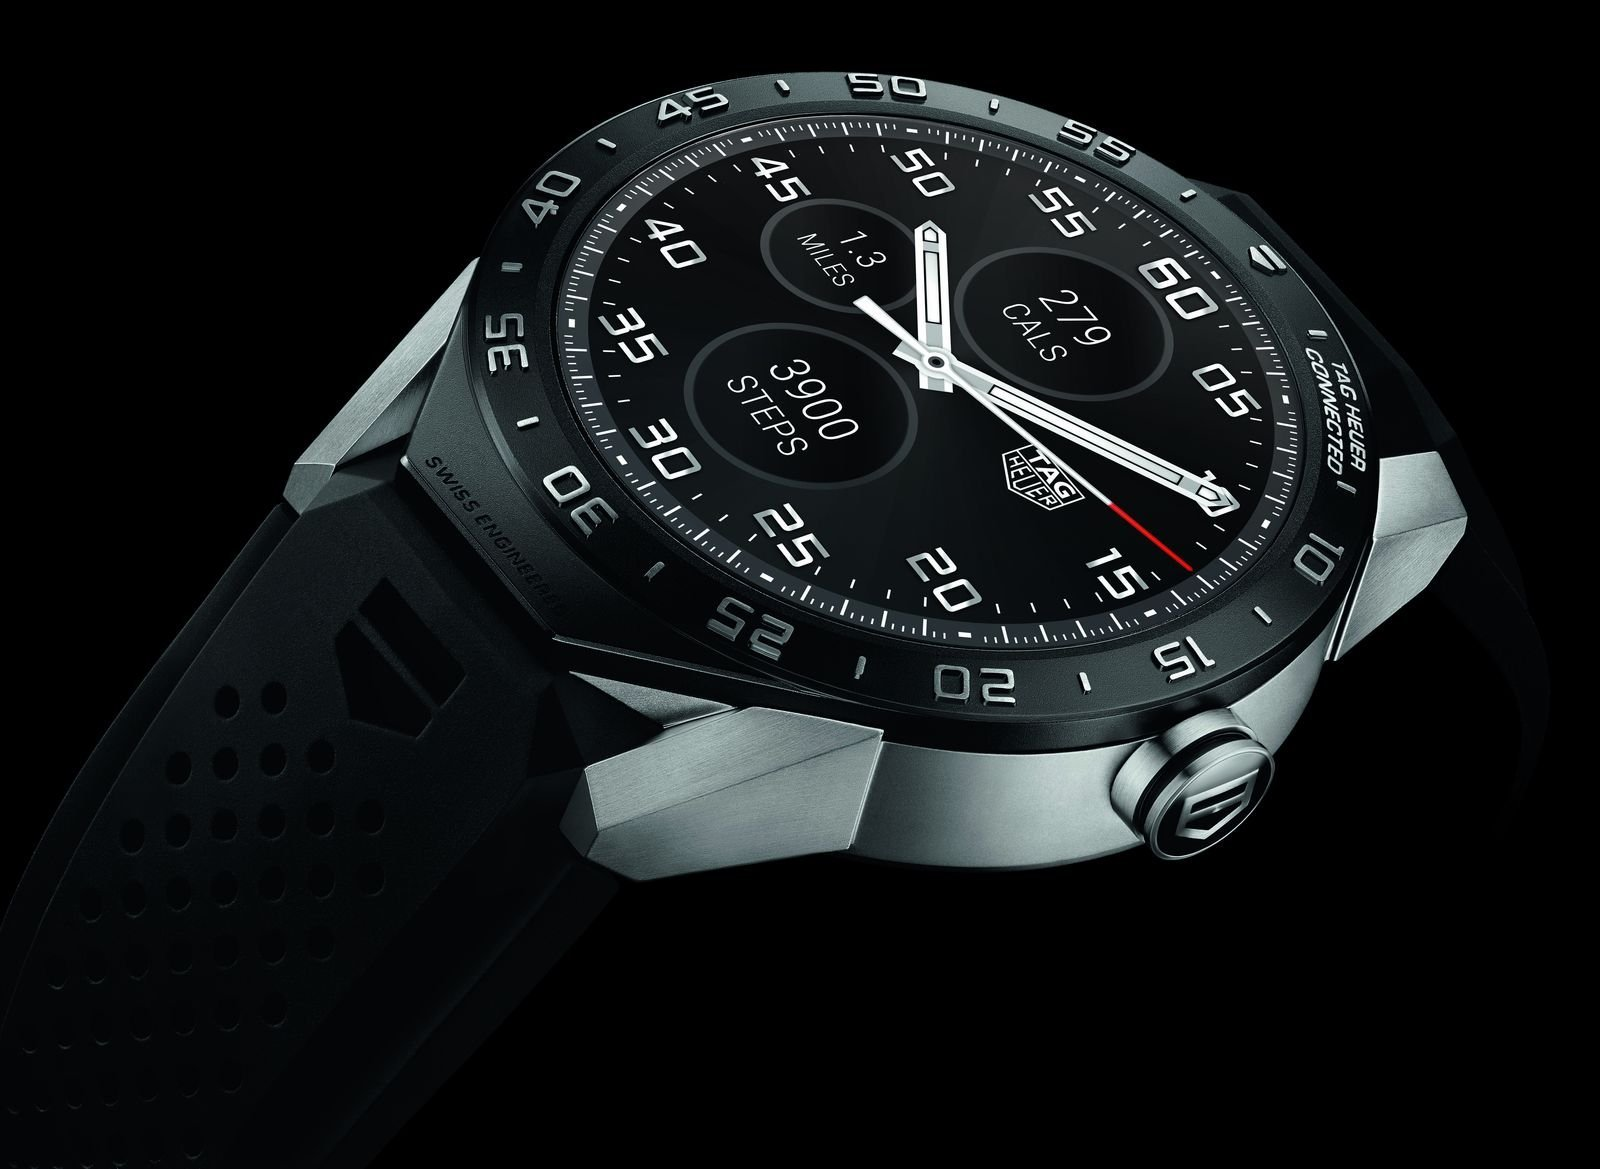 Connected Watch : Tag Heuer peine à faire face à la demande